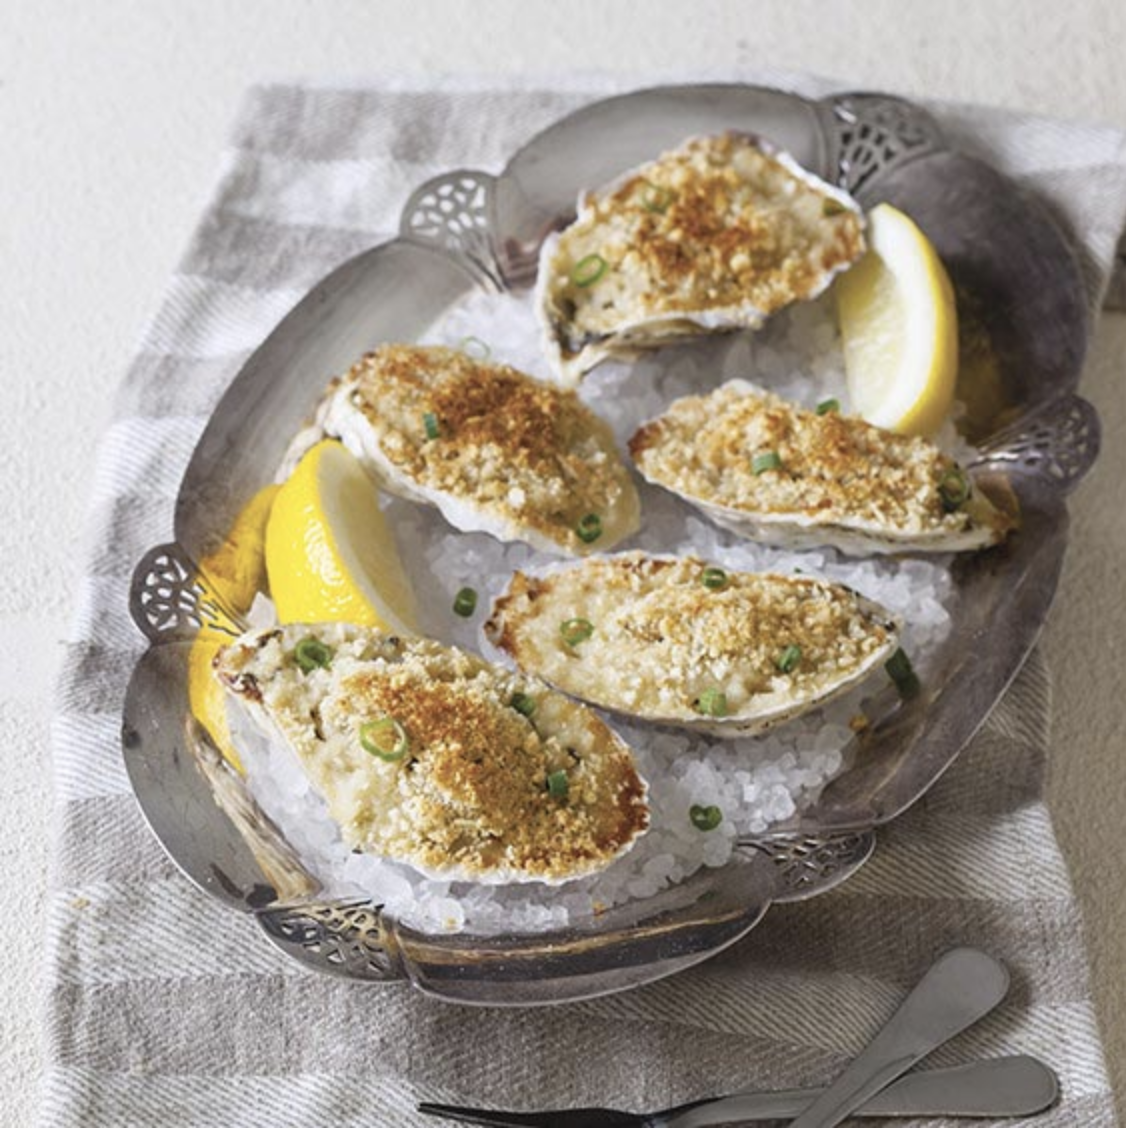 Oyster Bienville